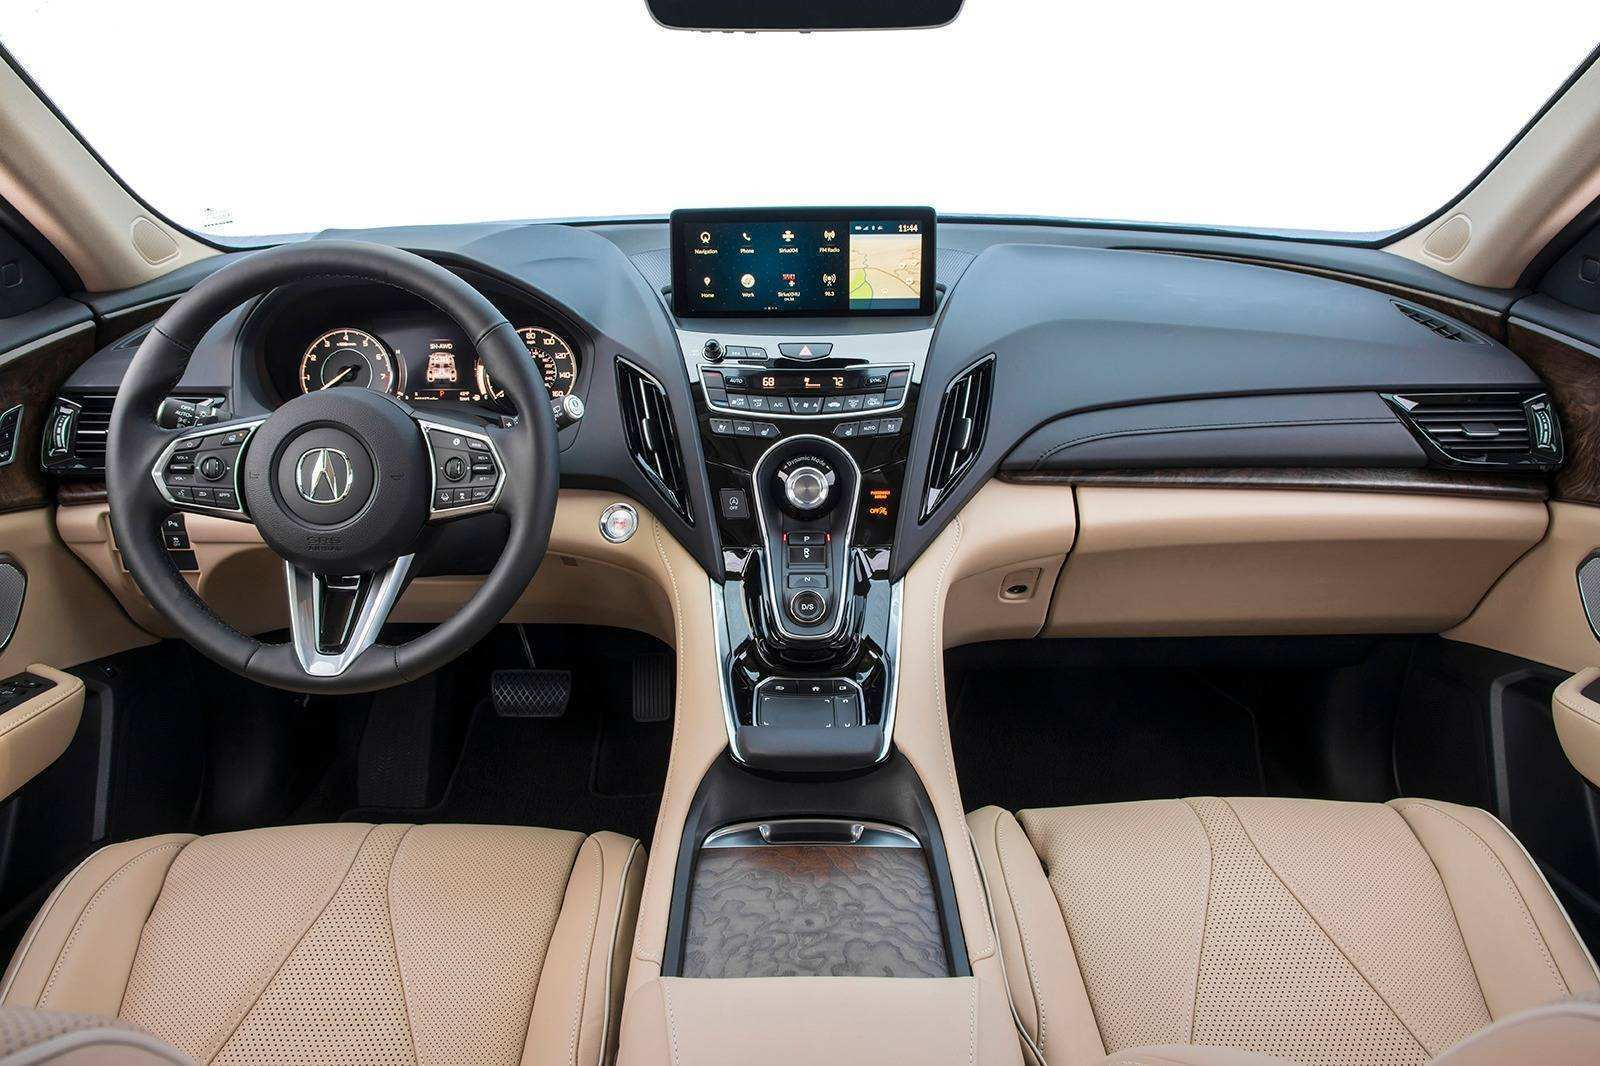 20 All New 2019 Acura Price Picture for 2019 Acura Price